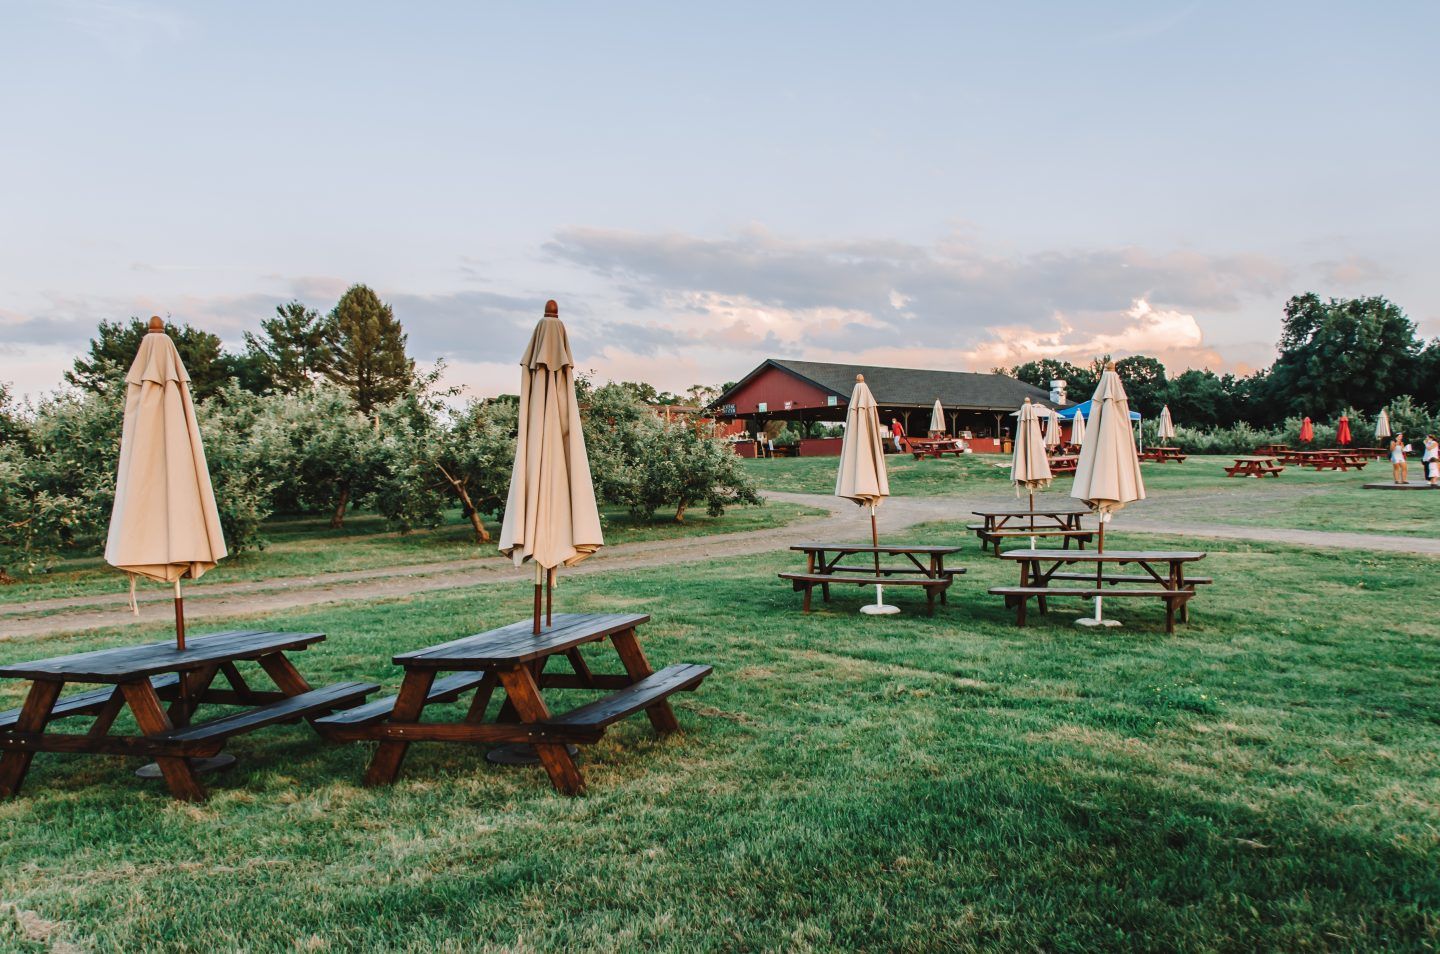 Brooklyn Cider House in New Paltz, NY lawn